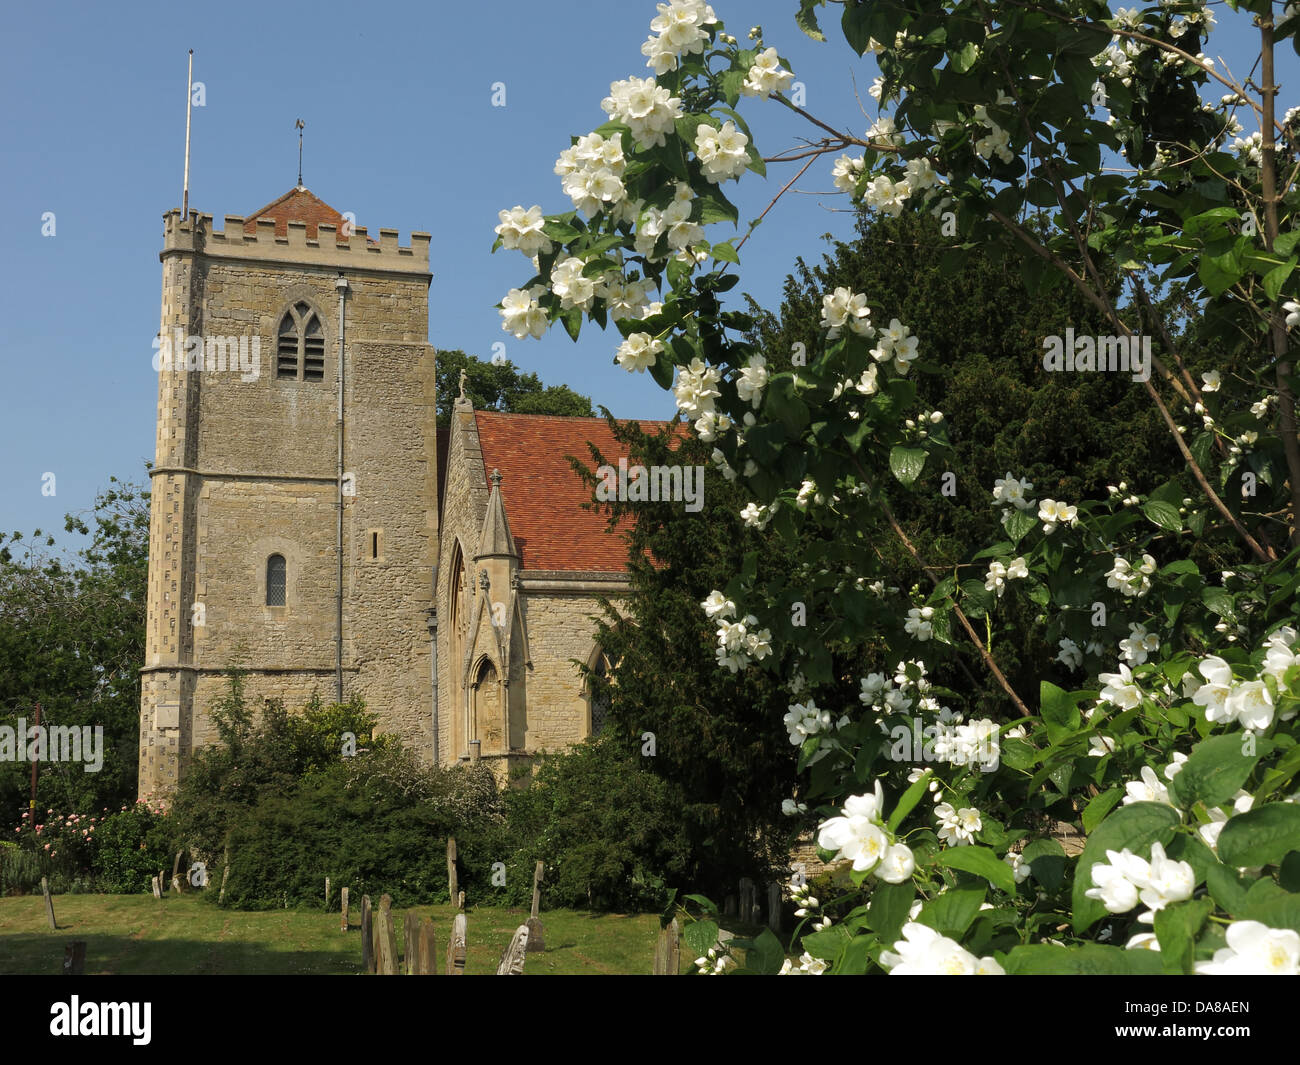 Beautiful Dorchester On Thames Abbey Church of St Peter & St Paul in summer - Stock Image